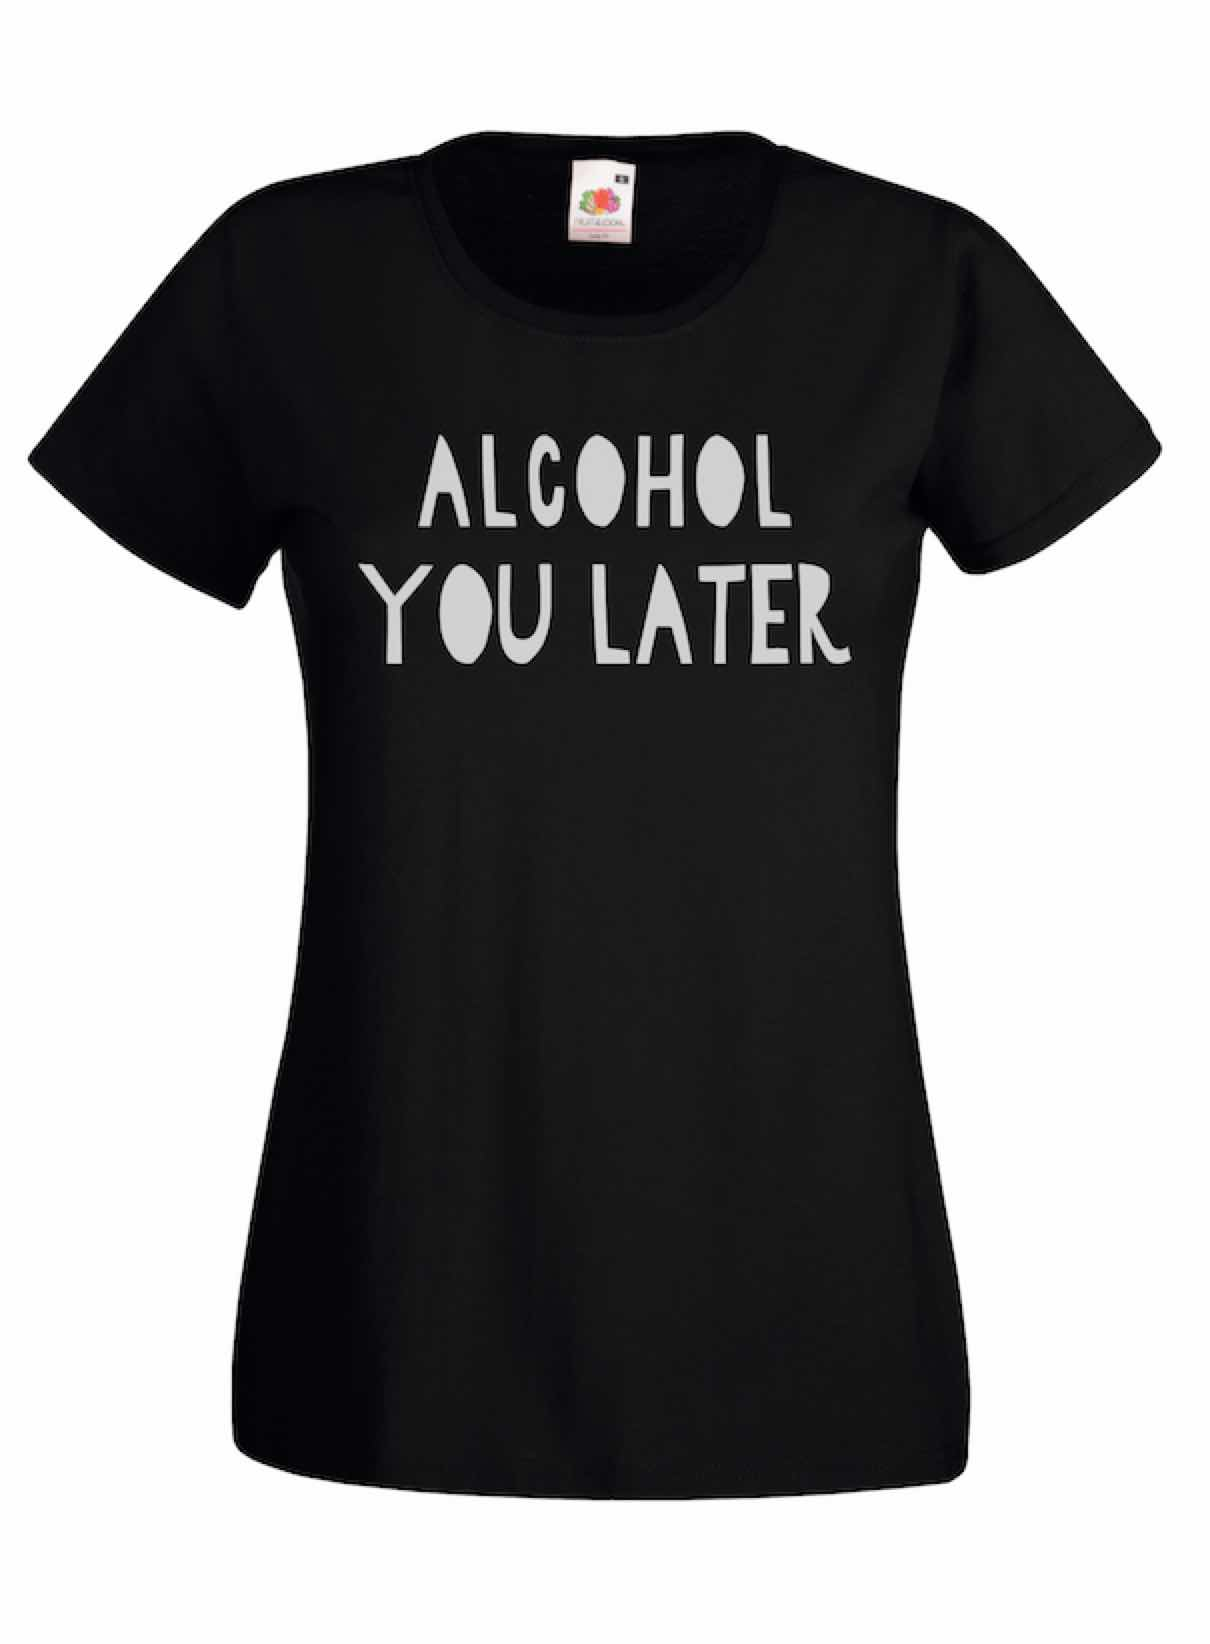 Alcohol You Later design for t-shirt, hoodie & sweatshirt